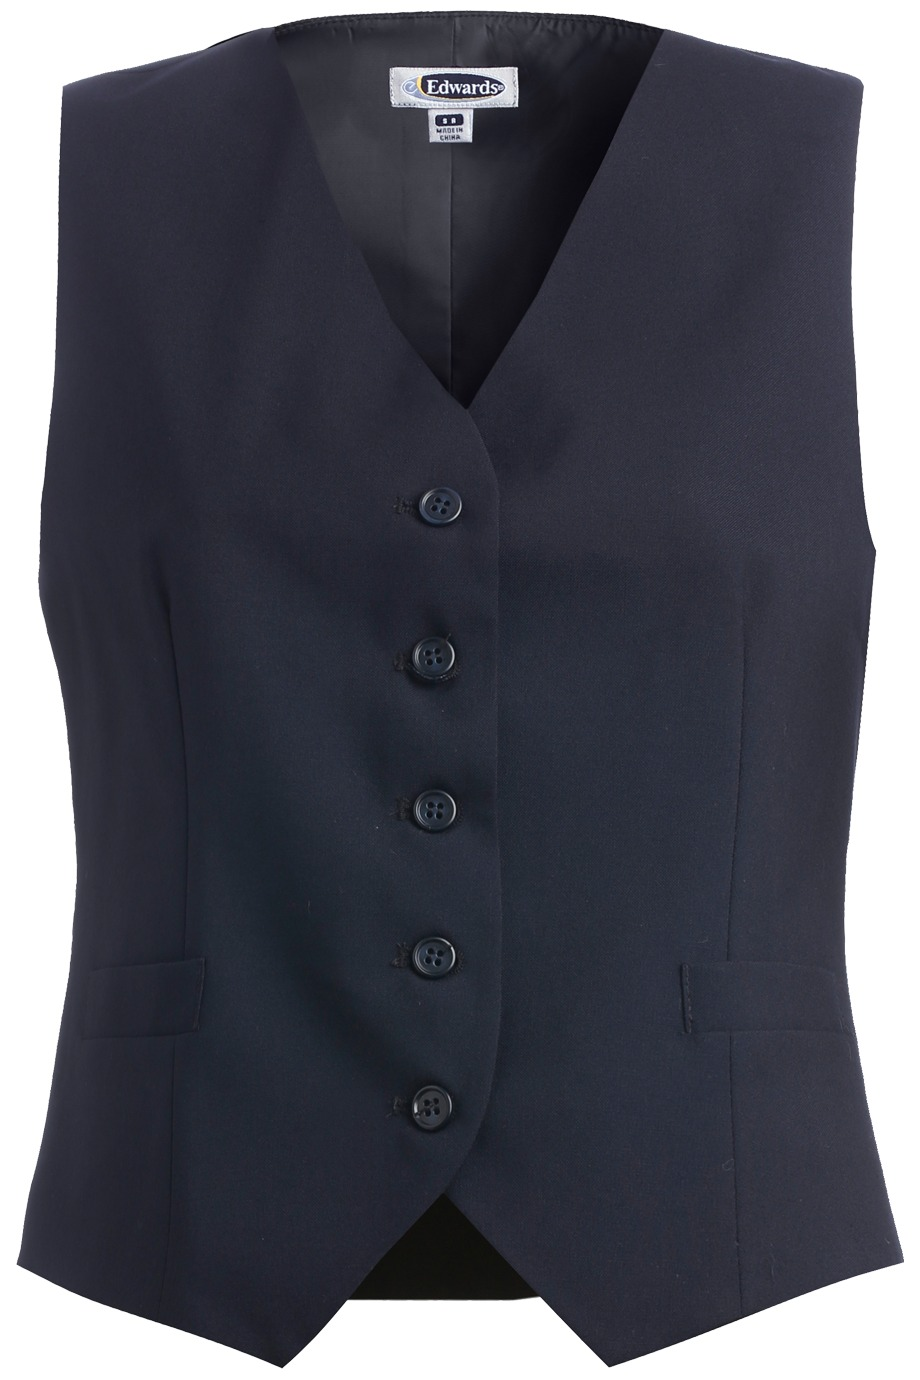 Edwards Garment 7680 - High Button Vest